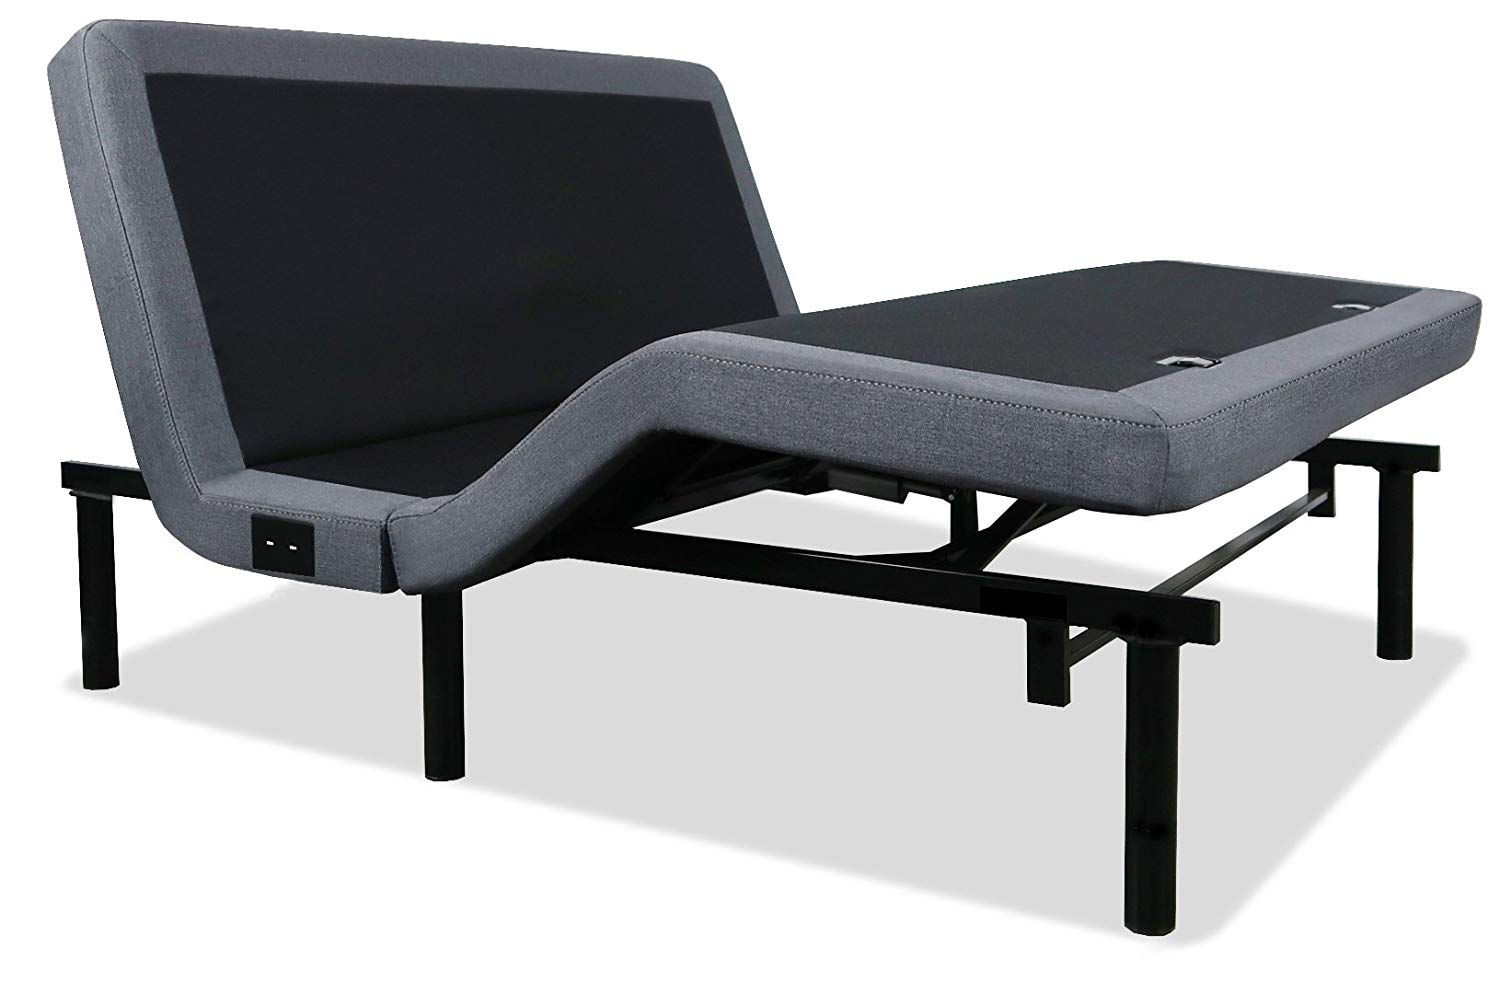 Land Of Beds Reviews The Best Adjustable Beds More Than Just A Fun Idea